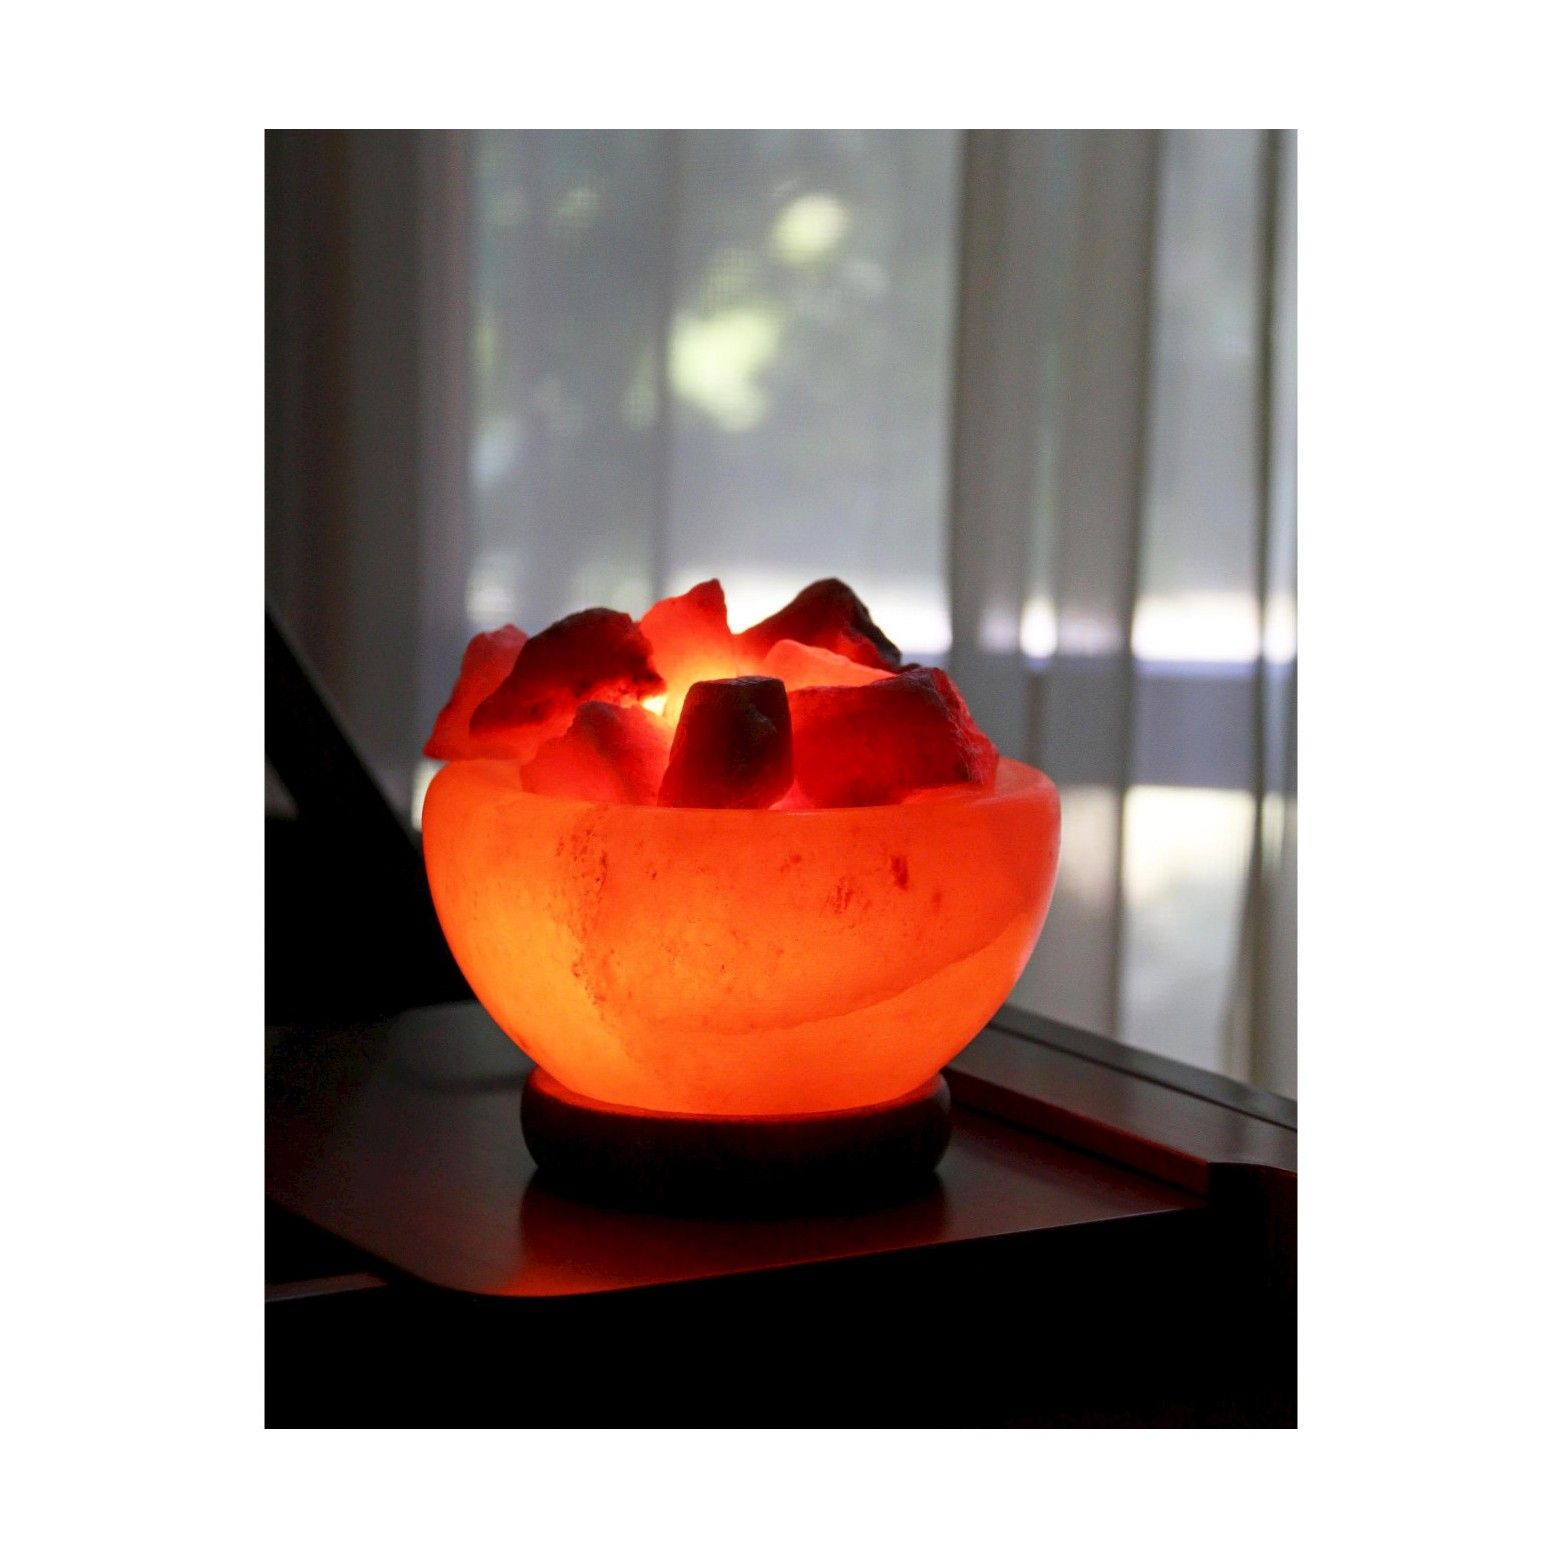 Salt Lamp Target Gorgeous Accentuationsmanhattan Comfort Himalayan Salt Lamp Fire Bowl Design Decoration